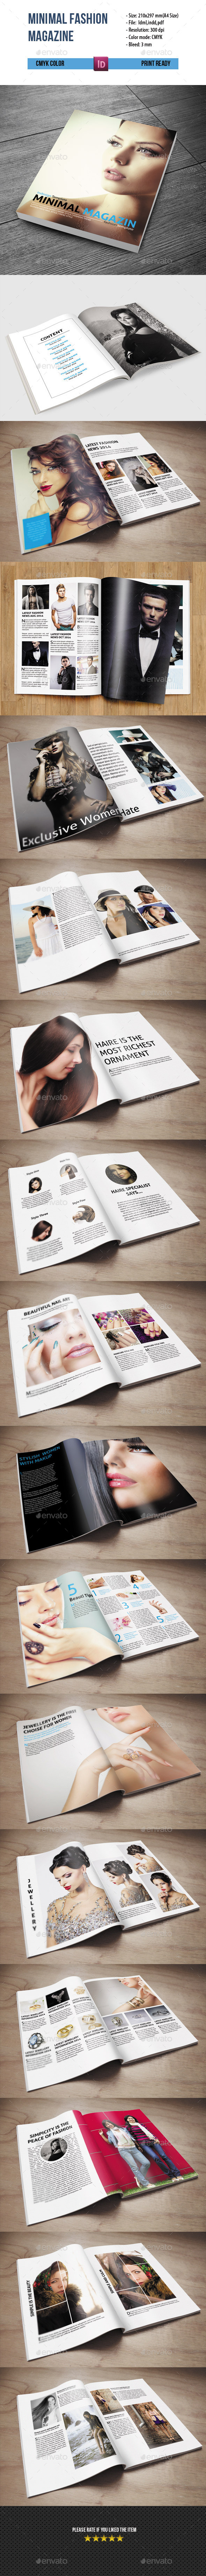 GraphicRiver Minimal Fashion Magazine Template-34 Pages 9228077